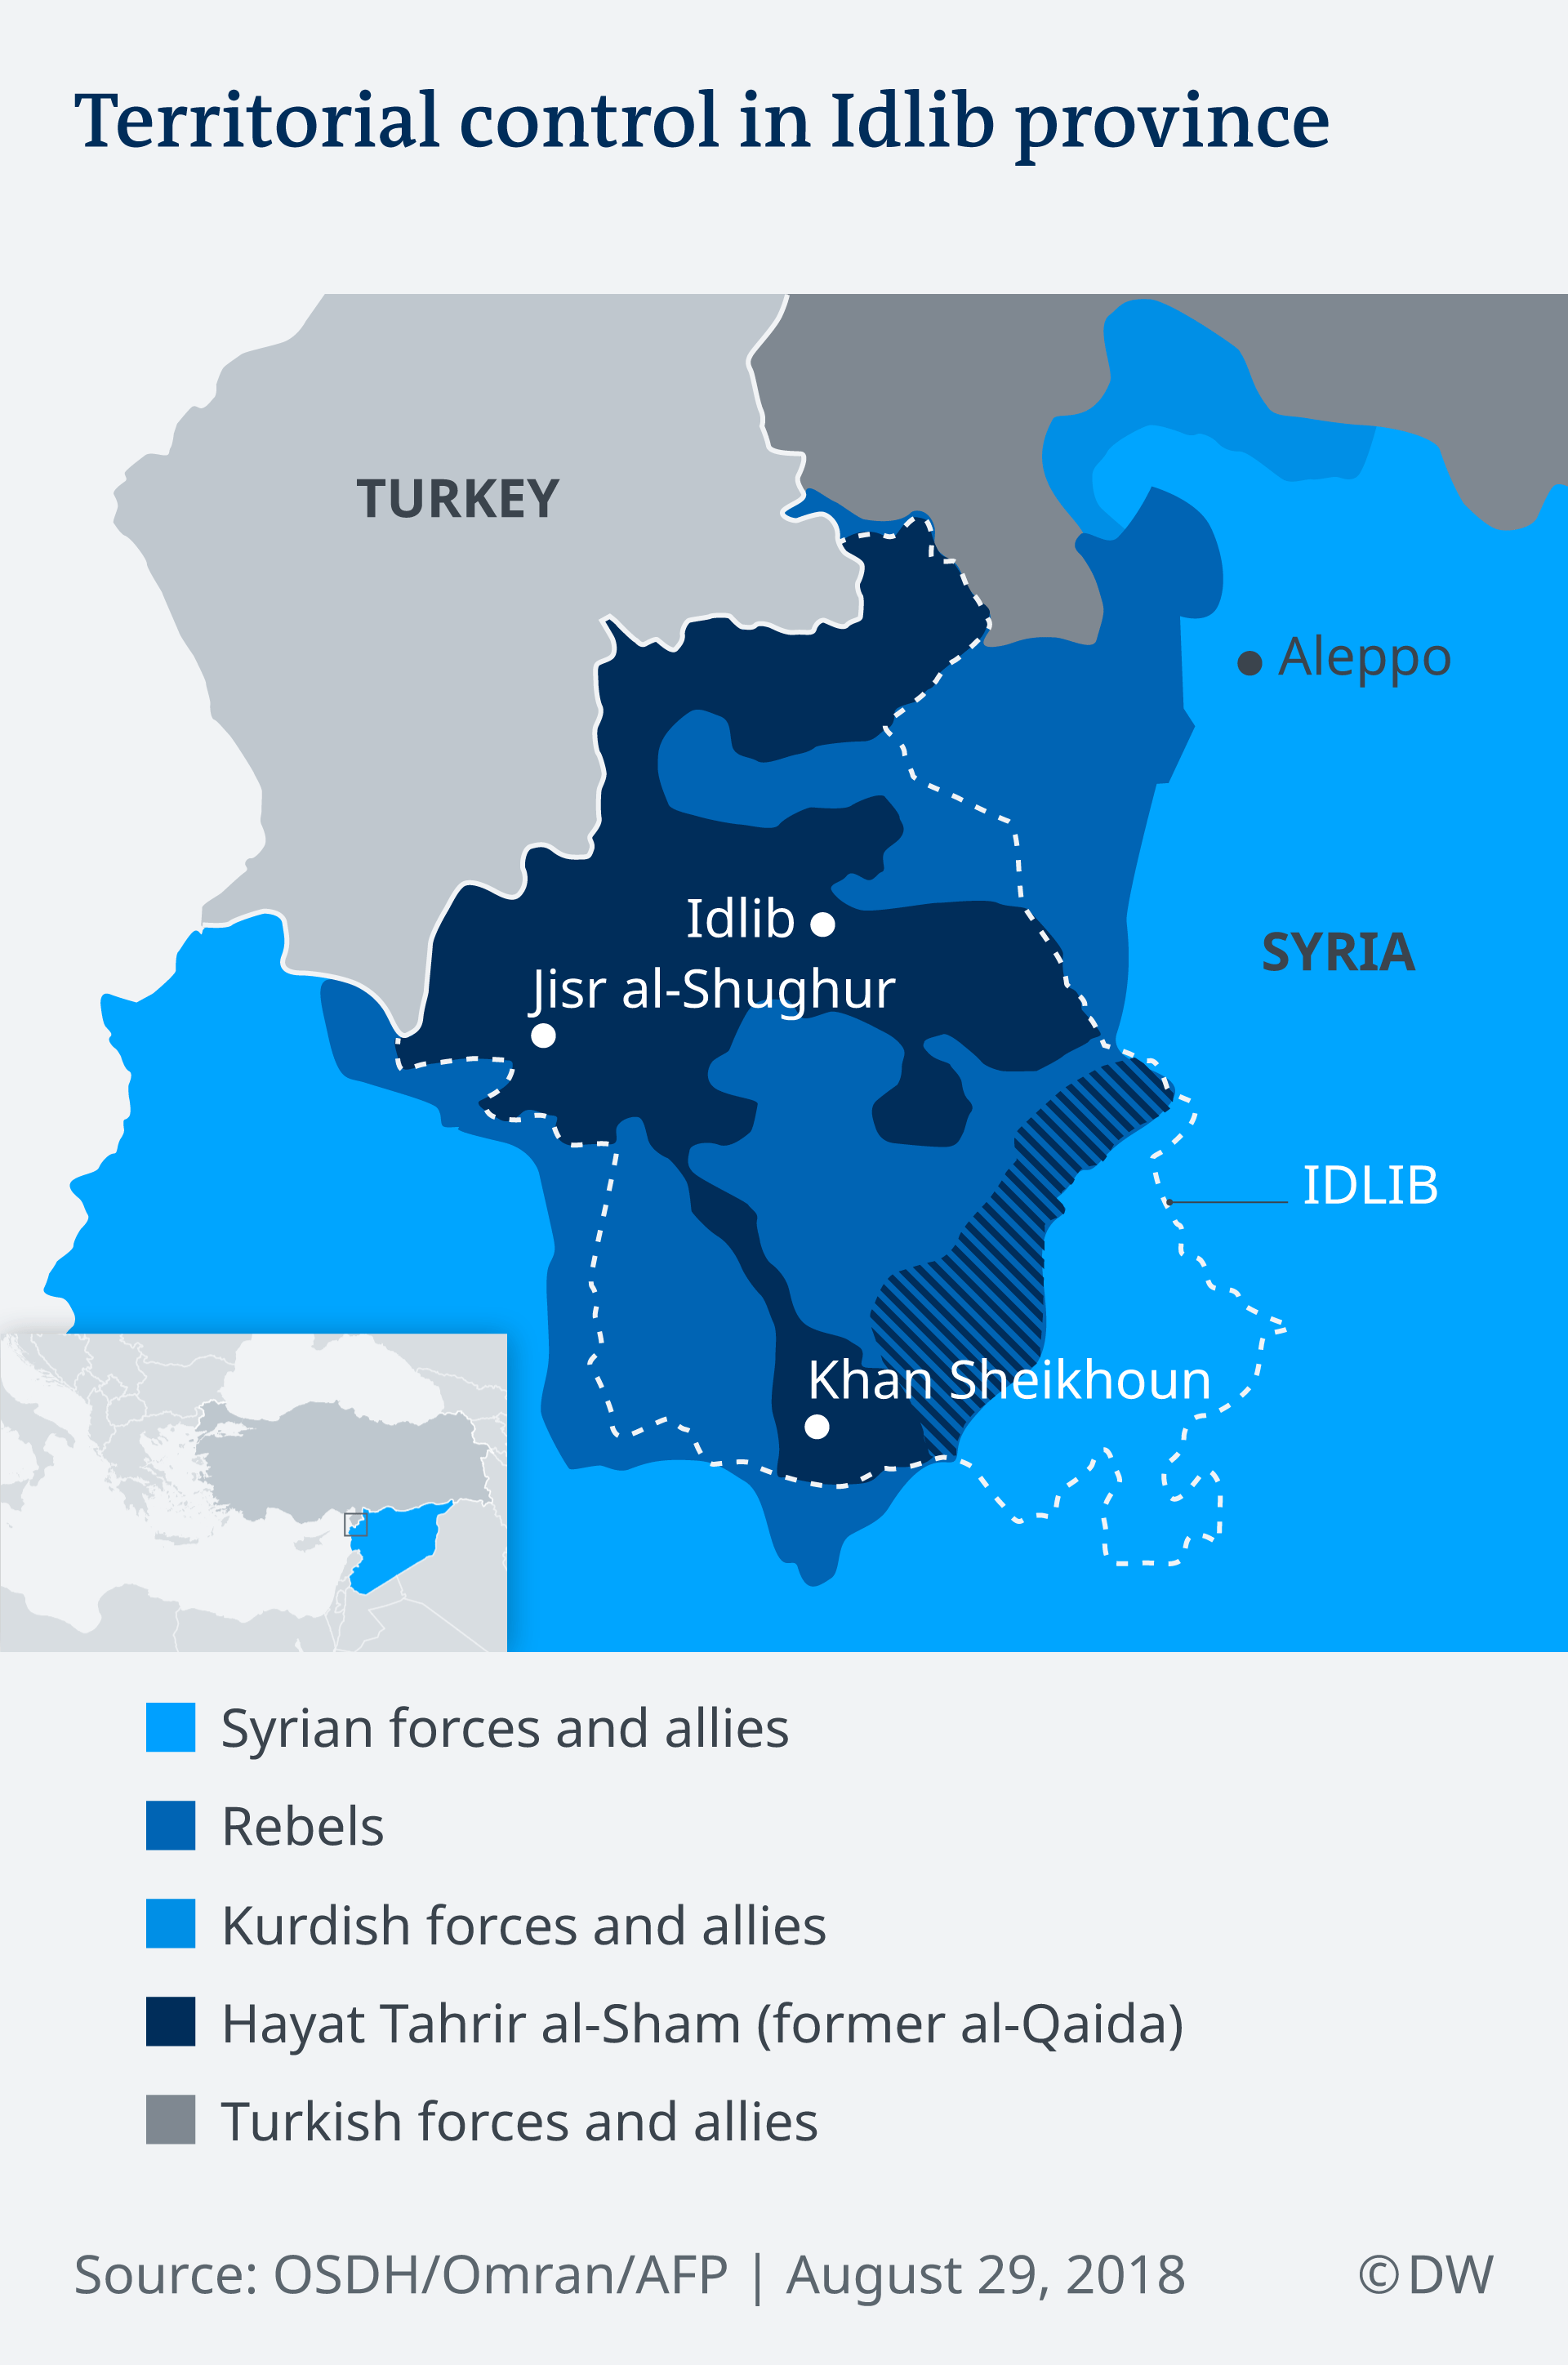 Infographic showing which forces control parts of Idlib province